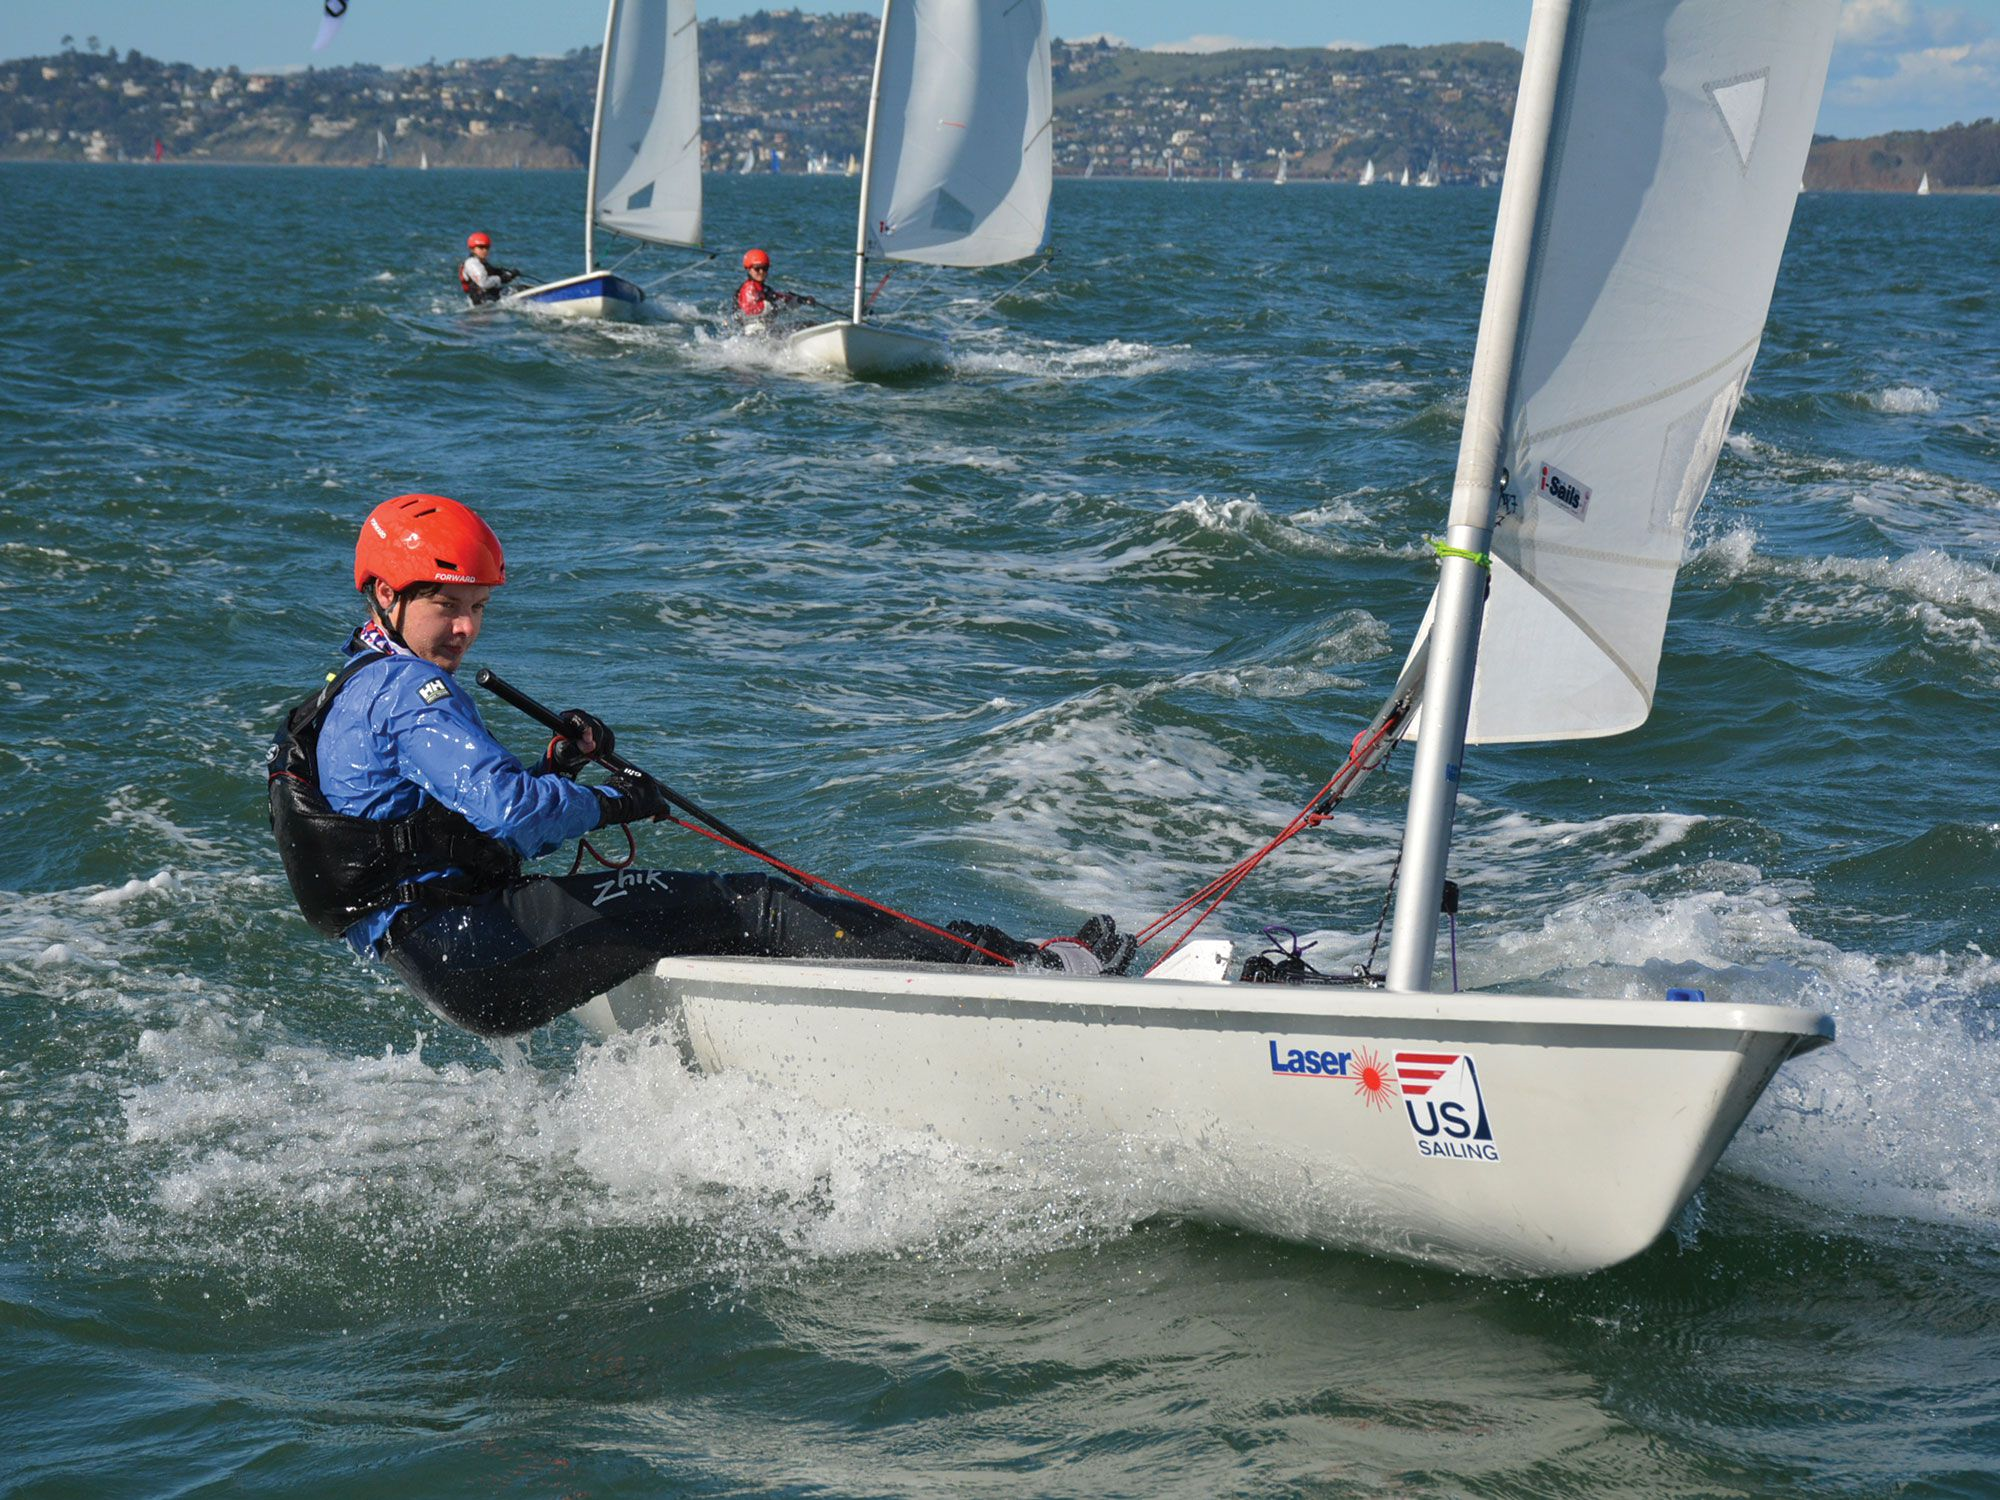 Helmets and sailing—who knew it would come to be? It's not surprising, however, given the greater usage in junior sailing on up to the America's Cup.